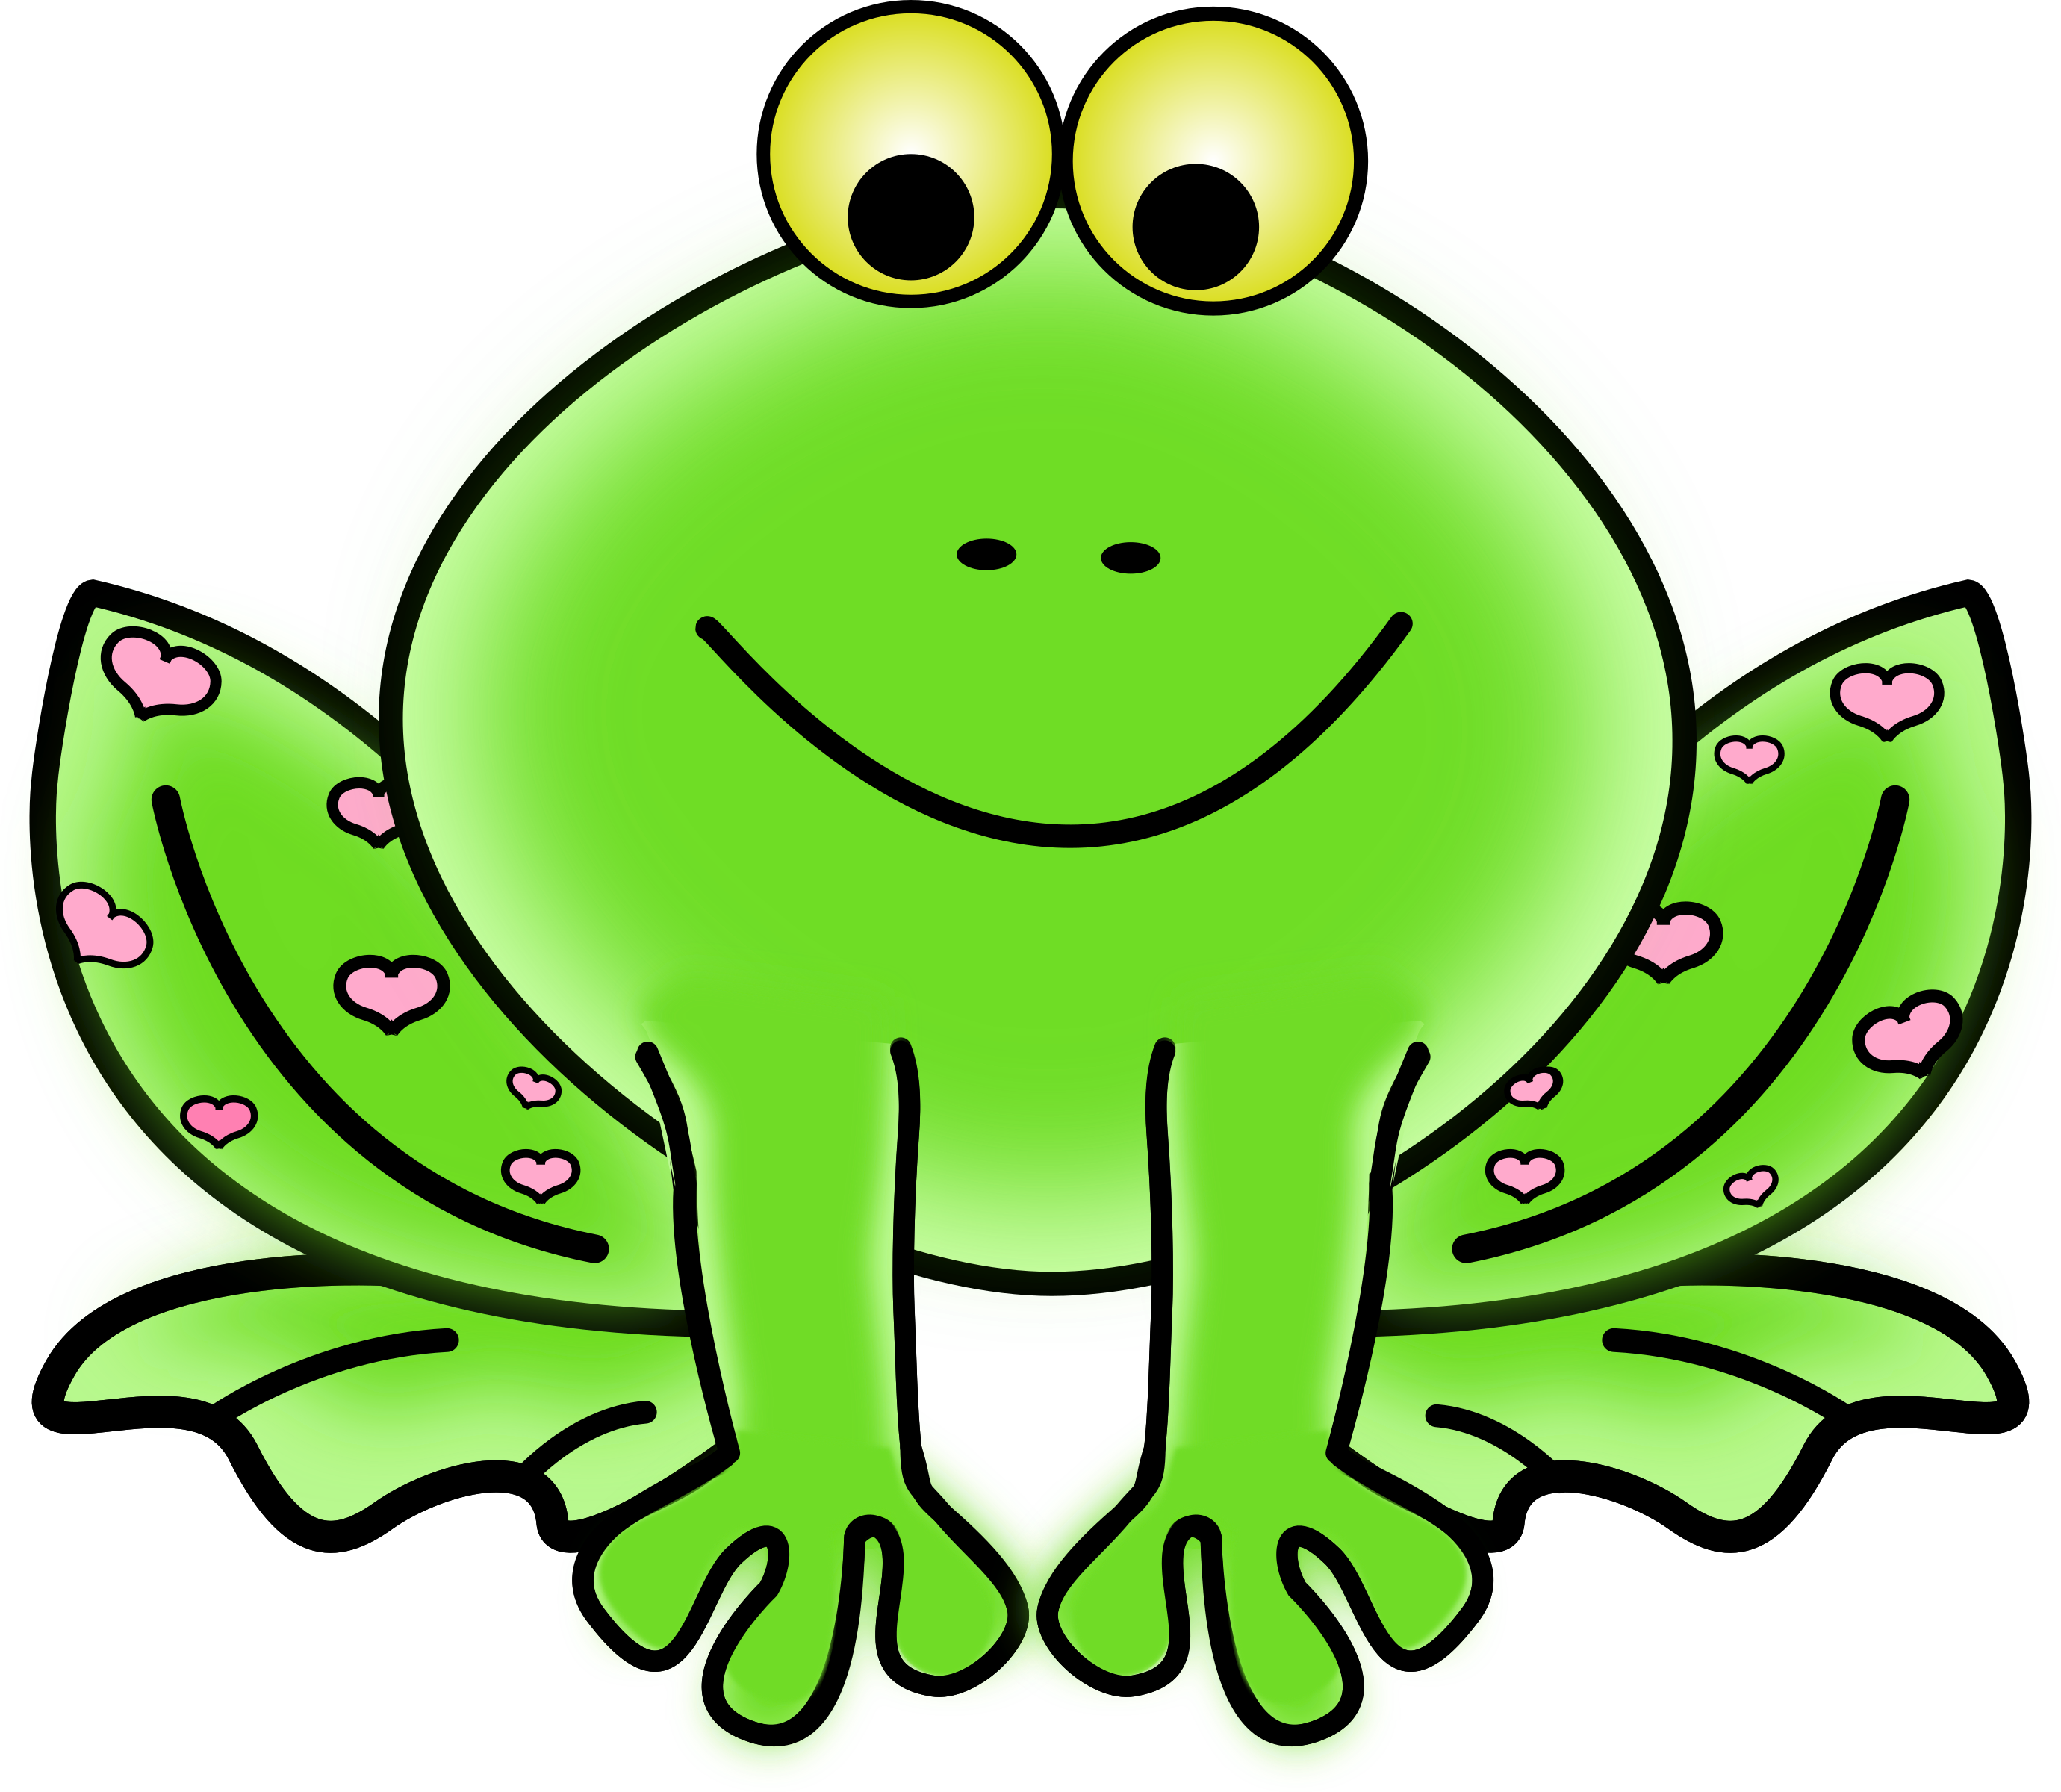 Crown clipart frog. Green valentine with pink